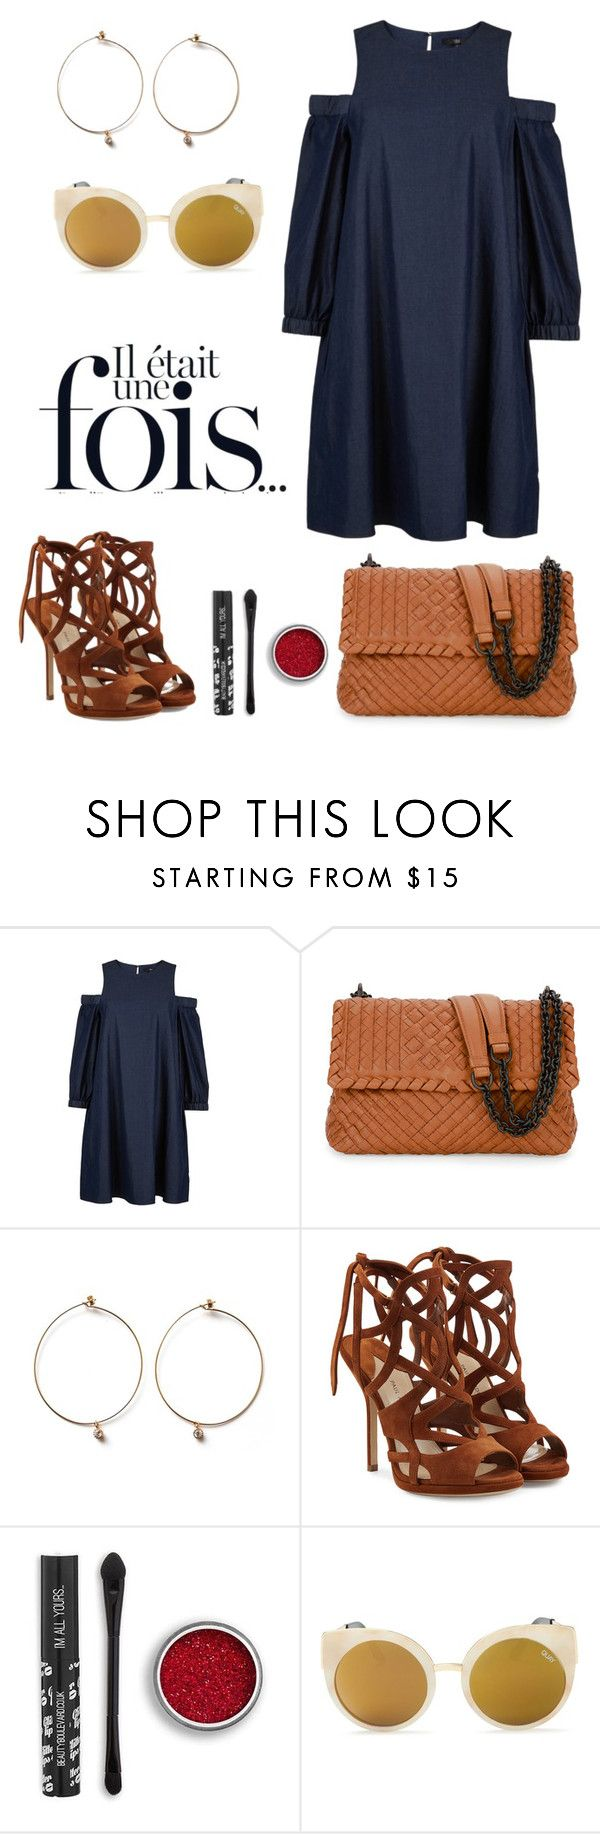 """Dress."" by schenonek ❤ liked on Polyvore featuring TIBI, Bottega Veneta, Paul Andrew and Quay"